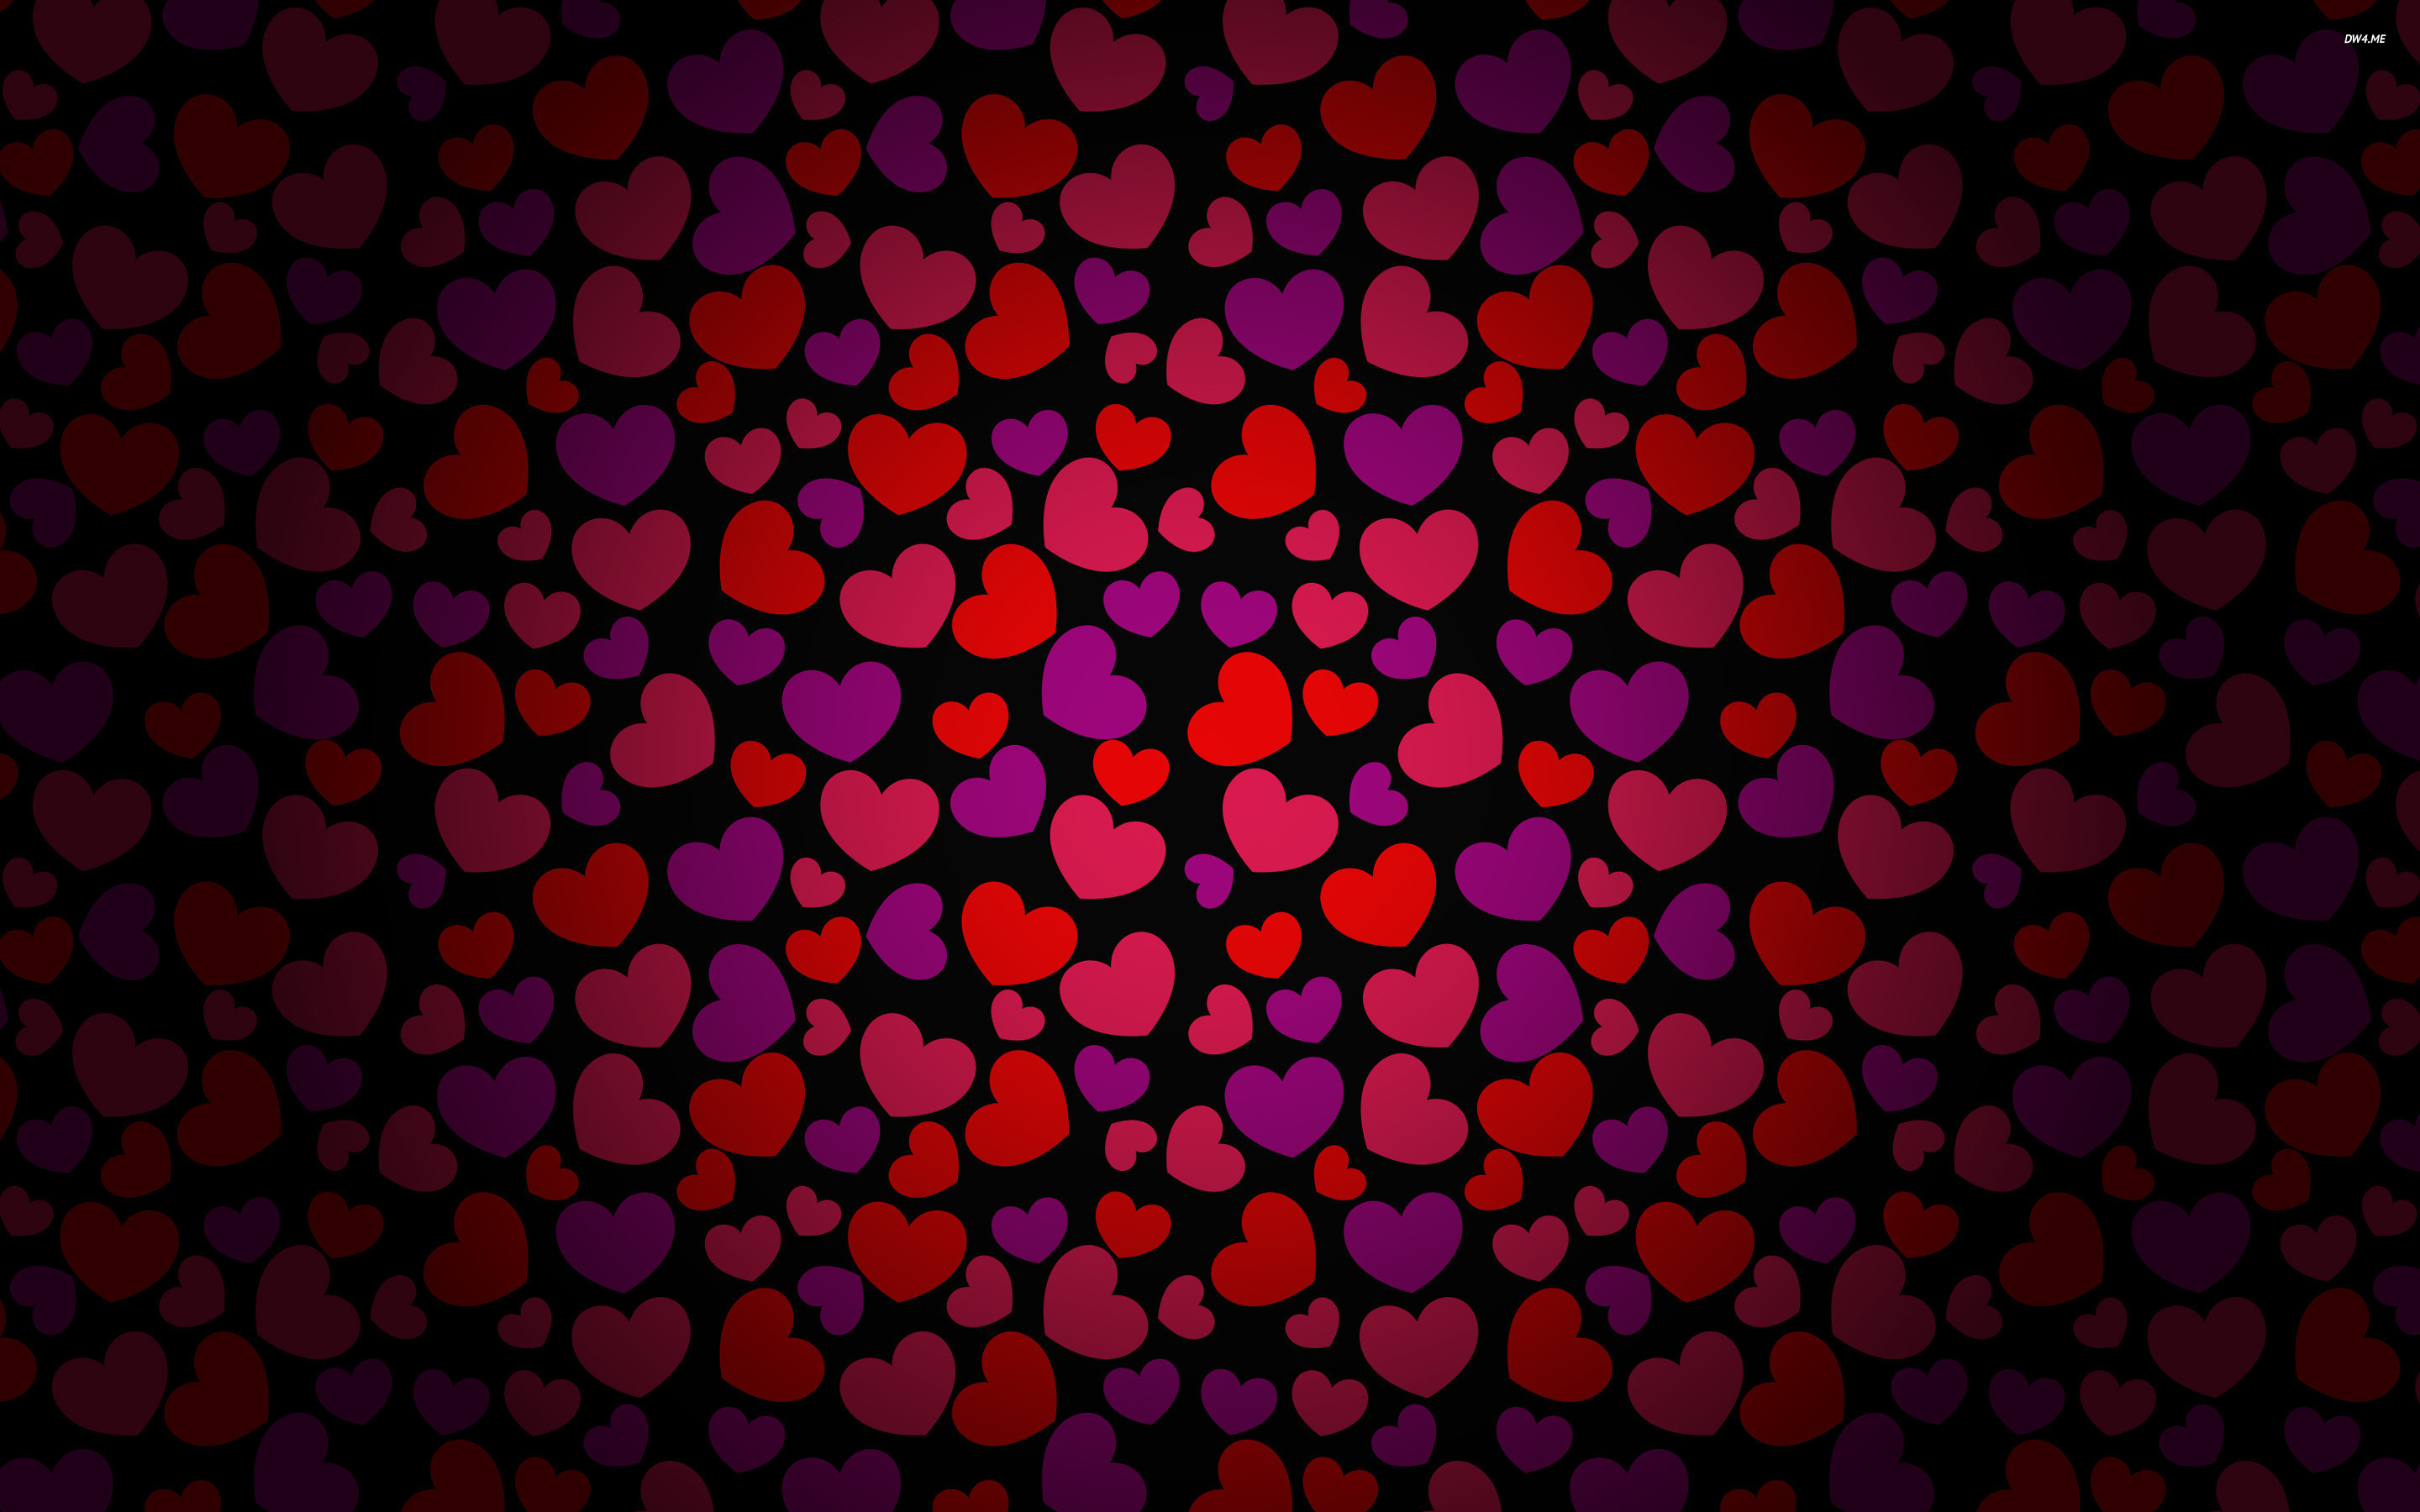 0 Pink Heart Wallpaper | WallpaperSafari Red Heart Wallpapers Desktop |  WallpaperSafari